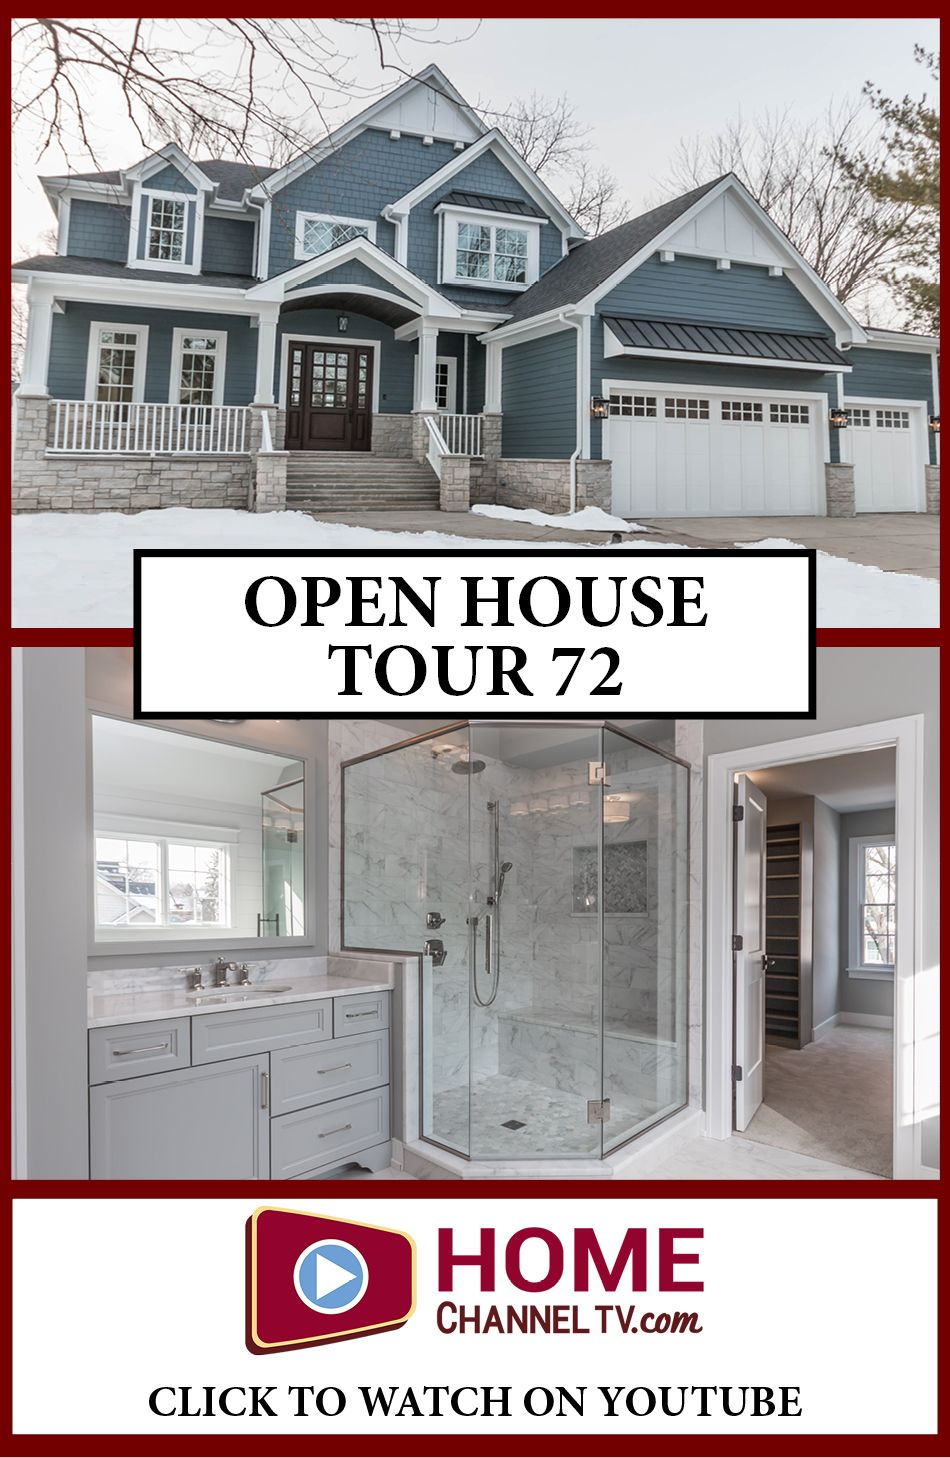 Open House Tour 72 See Video Tour Custom Homes House Tours House